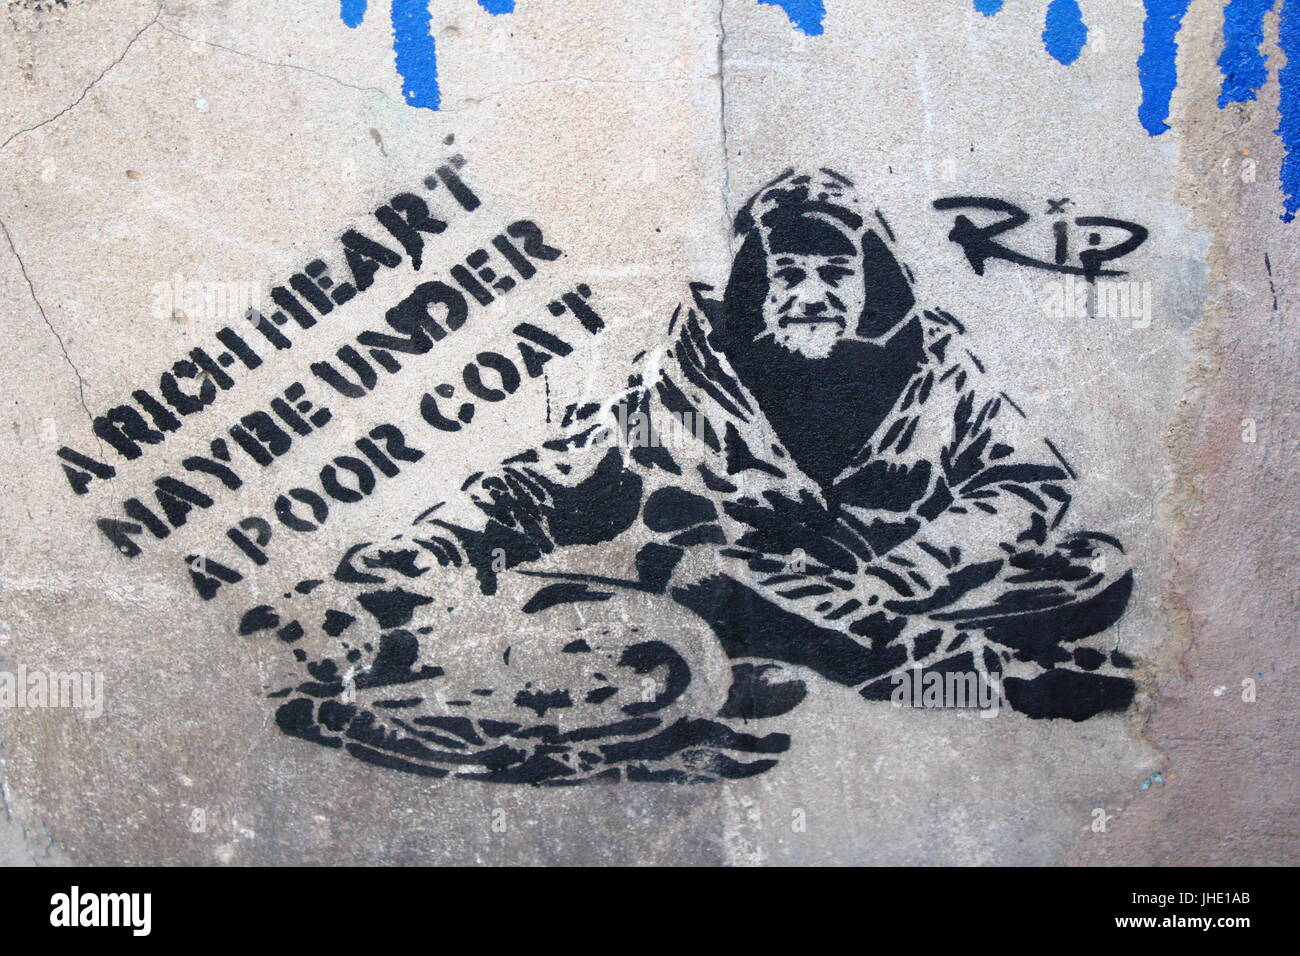 A Rich Heart May be Under a Poor Coat Graffiti Manchester, 2017 - Stock Image